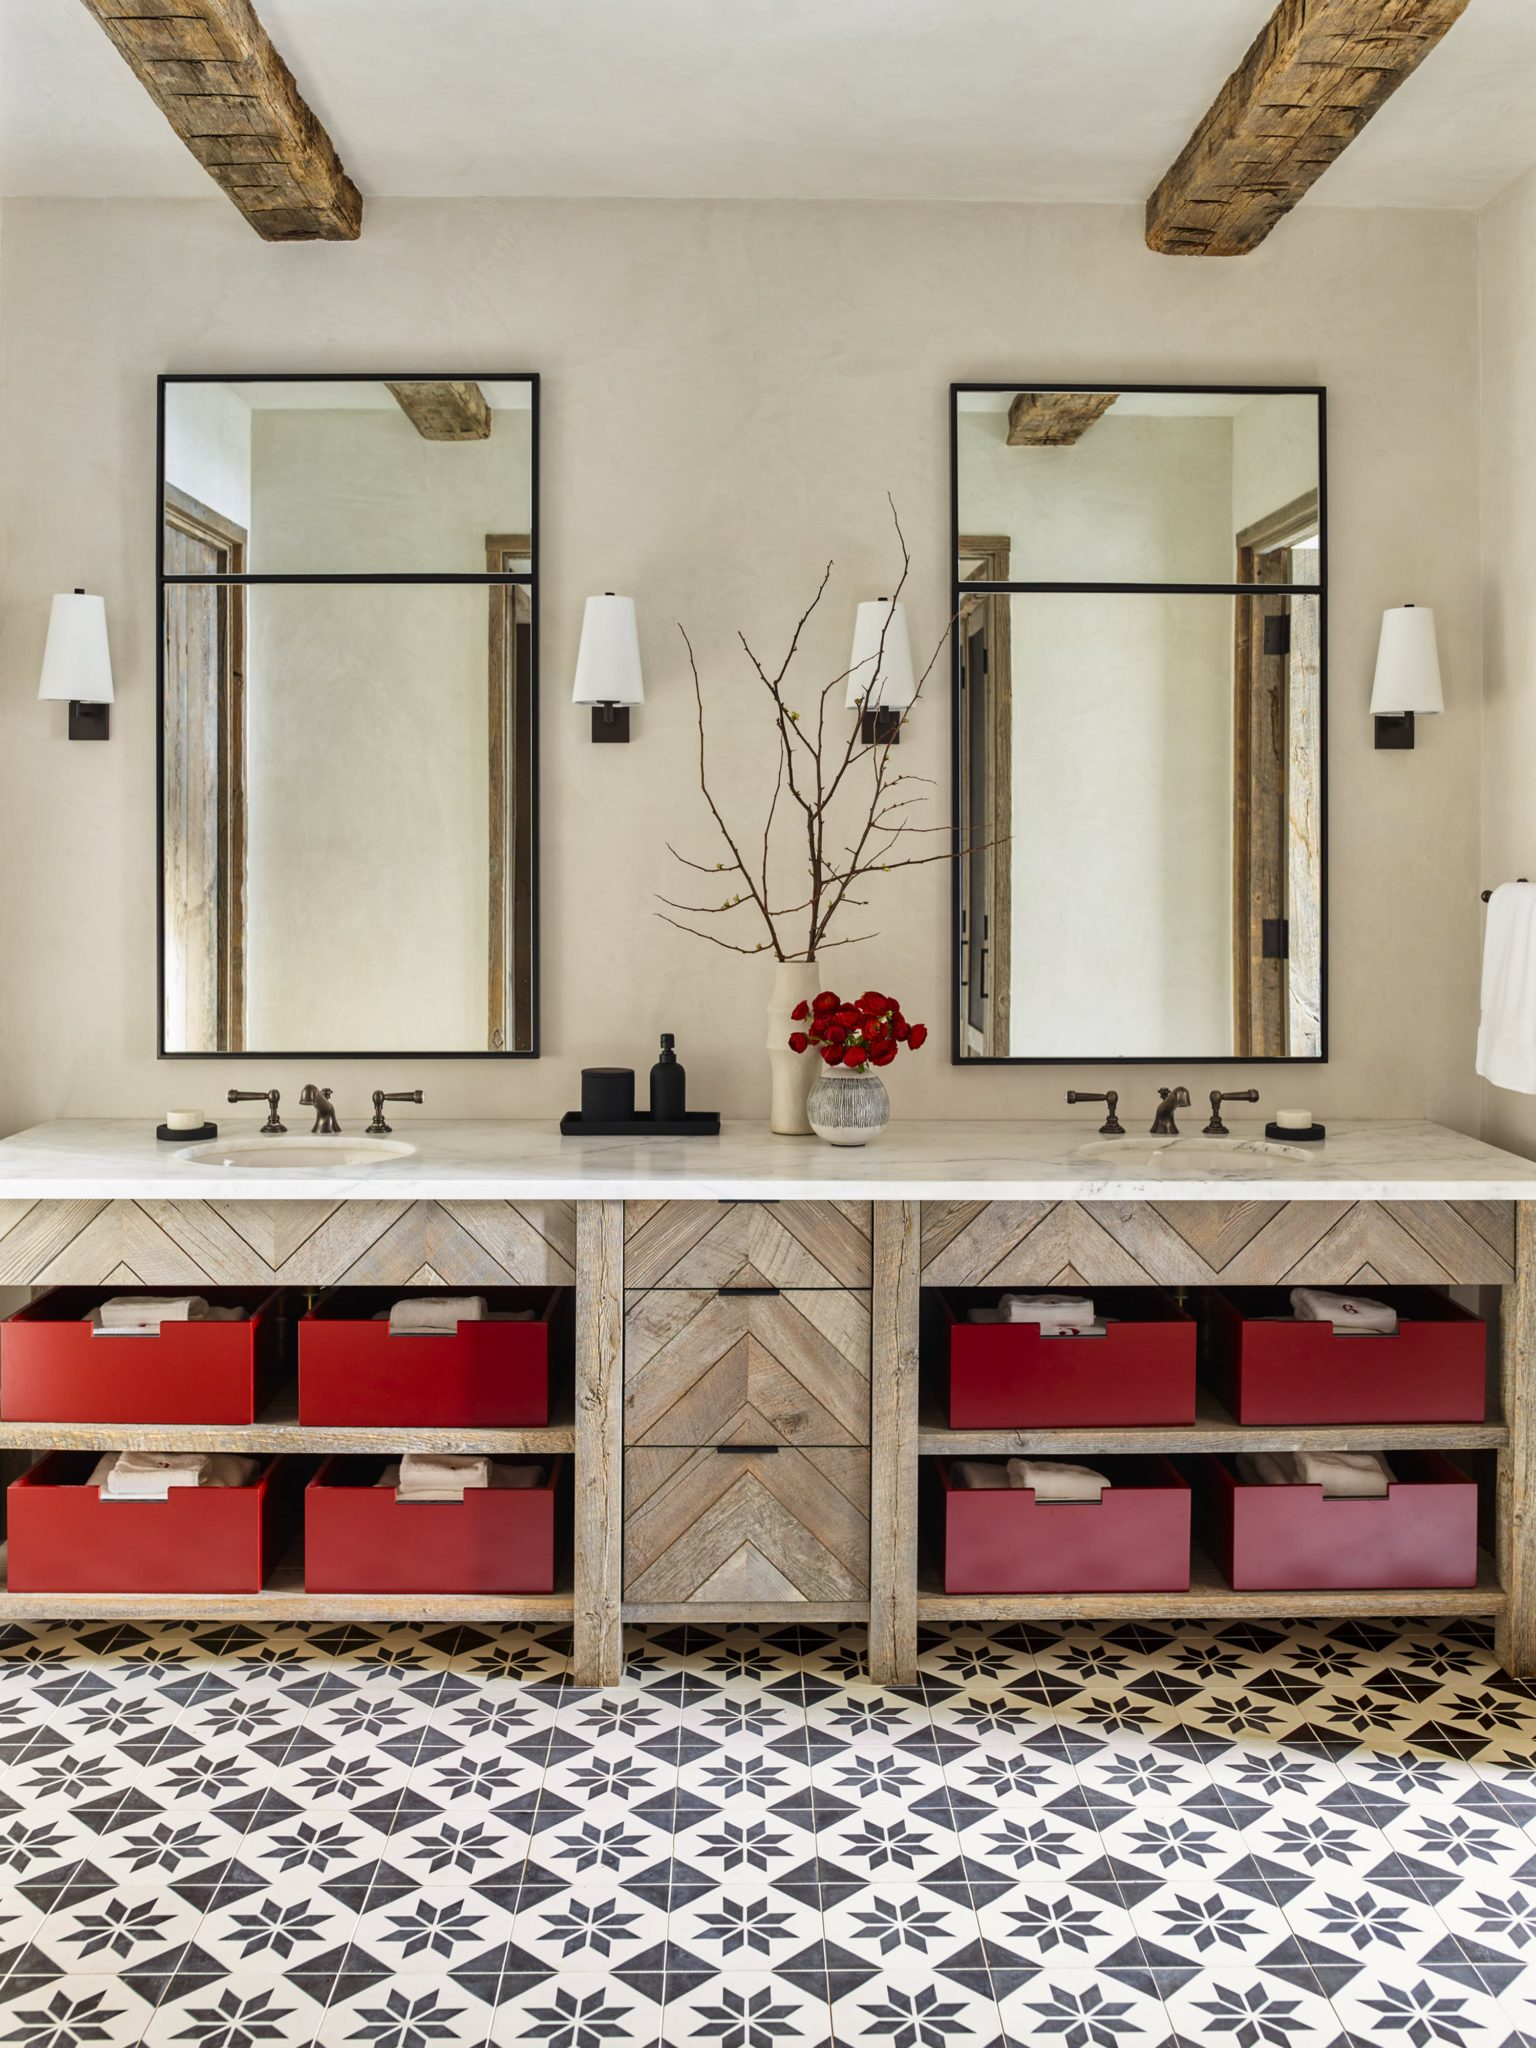 Playful yet stylish, this bathroom — complete with a custom, double vanity — is great for children. The vanity, a blend of rustic and modern design, was created using reclaimed wood, and the custom lacquered boxes add a charming pop of color.